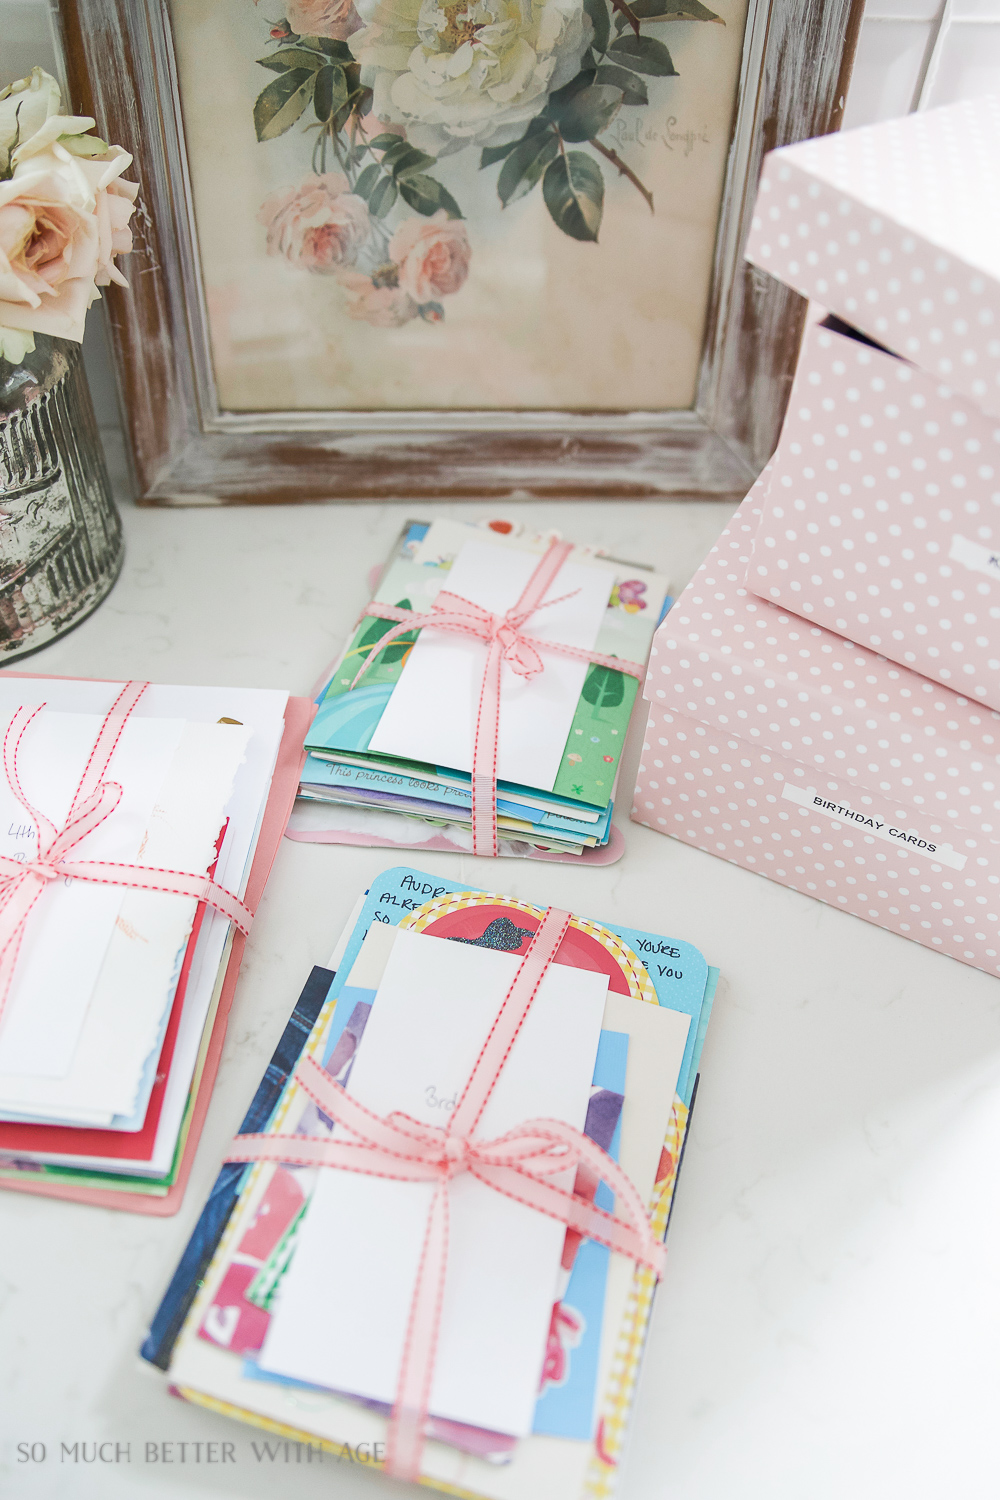 Organizing Kids Keepsakes (Birthday Cards) Printable/pretty wrapped cards - So Much Better With Age